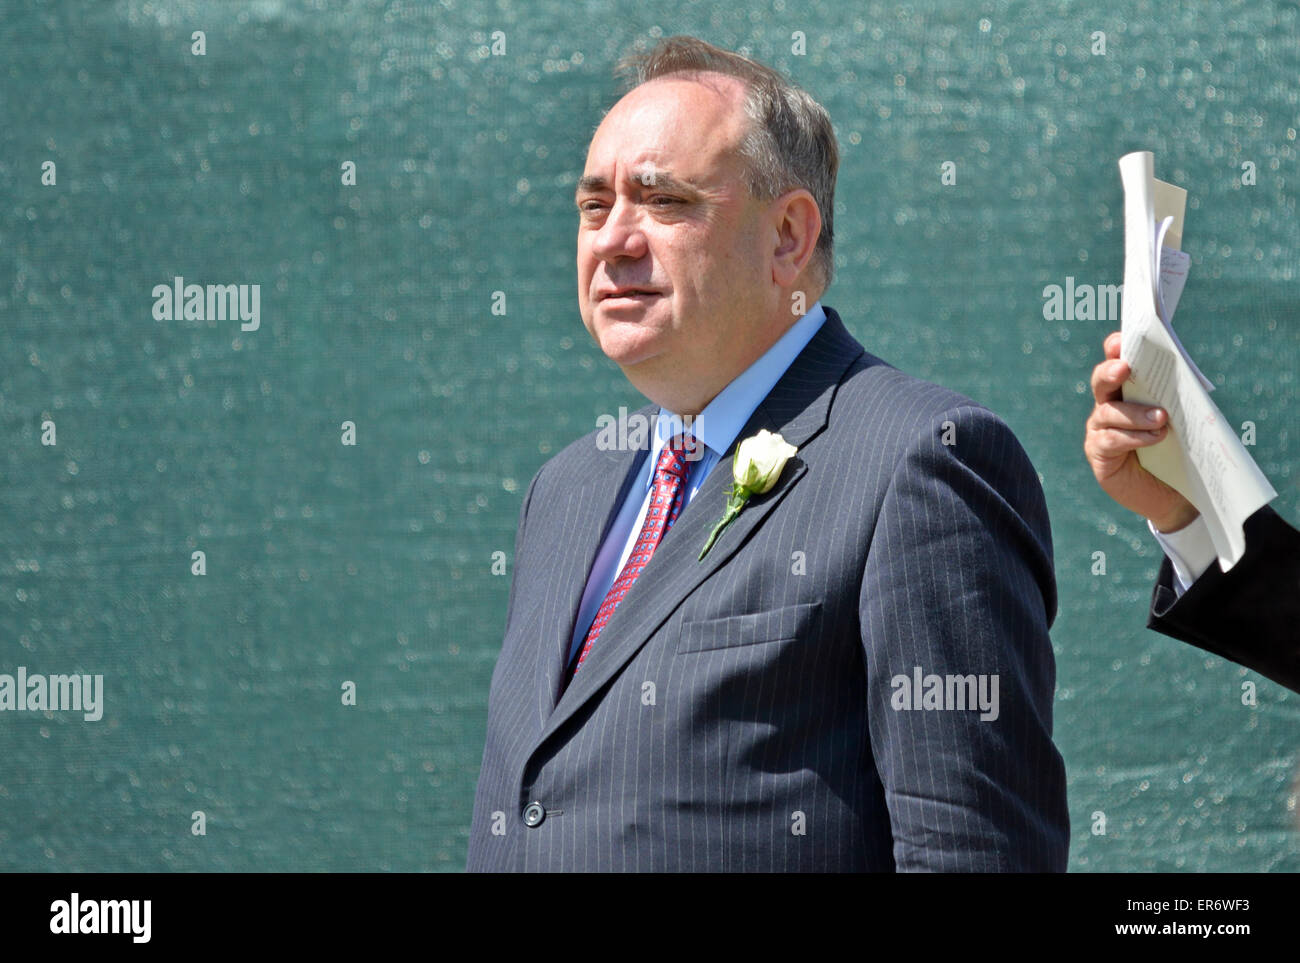 Alex Salmond MP (SNP: Gordon) on College Green, Westminster, after the Queen's Speech, May 27th 2015, State - Stock Image